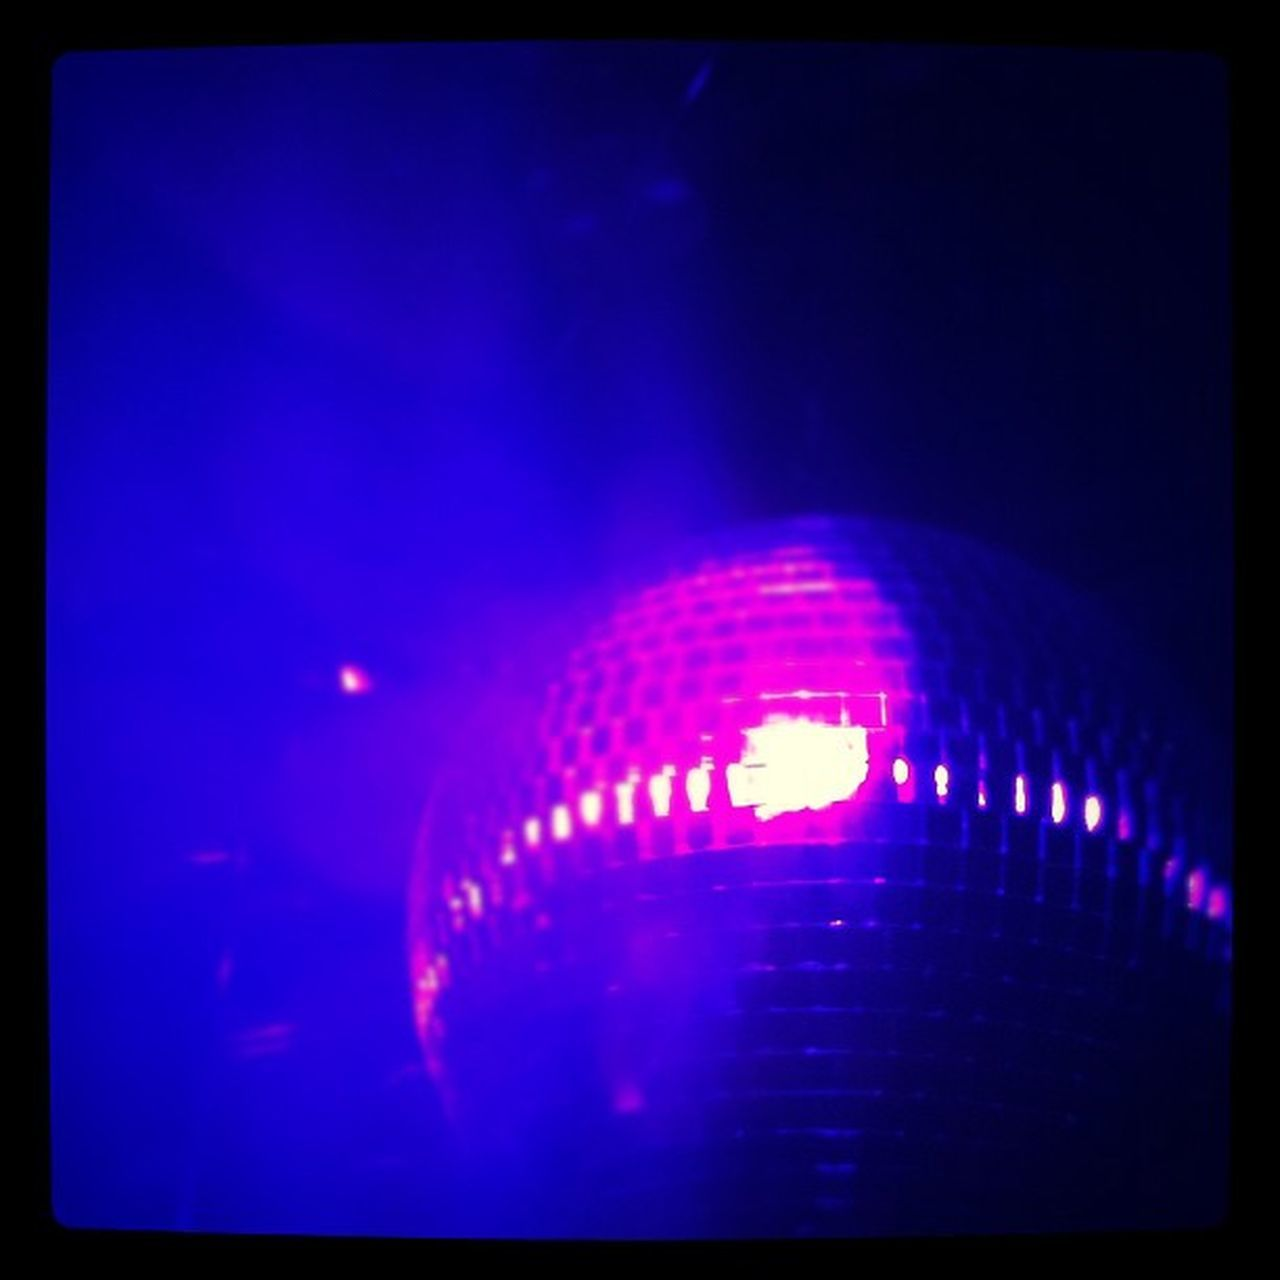 #out Fog Magenta Mirror Blue NY Club Purple Discoball Manhattan Drinks Newyork NYC Out Night Ball Newyorkcity City 15likes Light Music Meatpacking